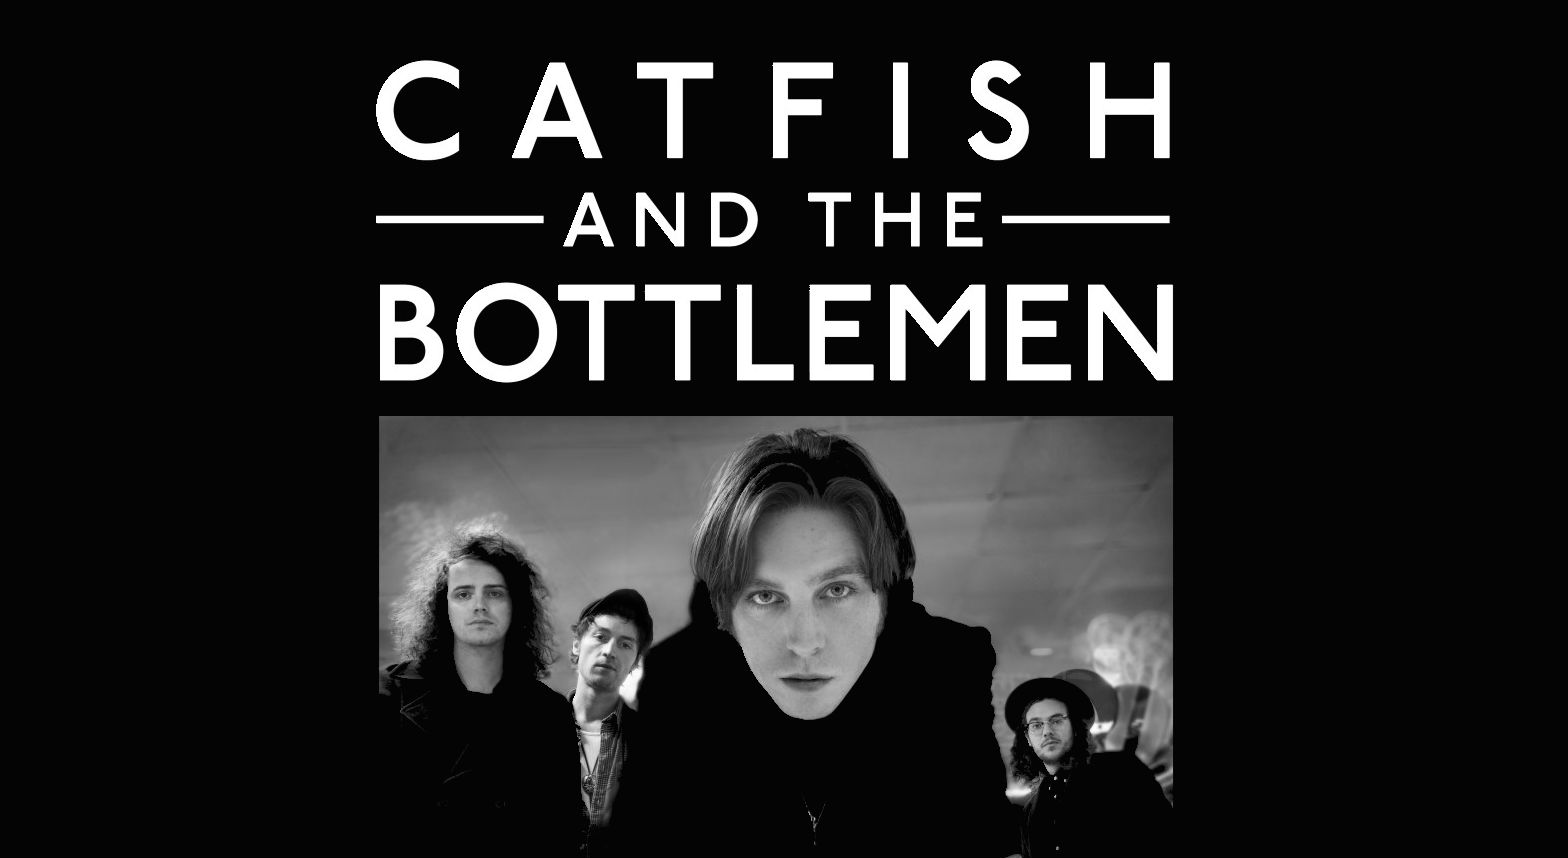 catfish-and-the-bottlemen-arenasV1.jpg